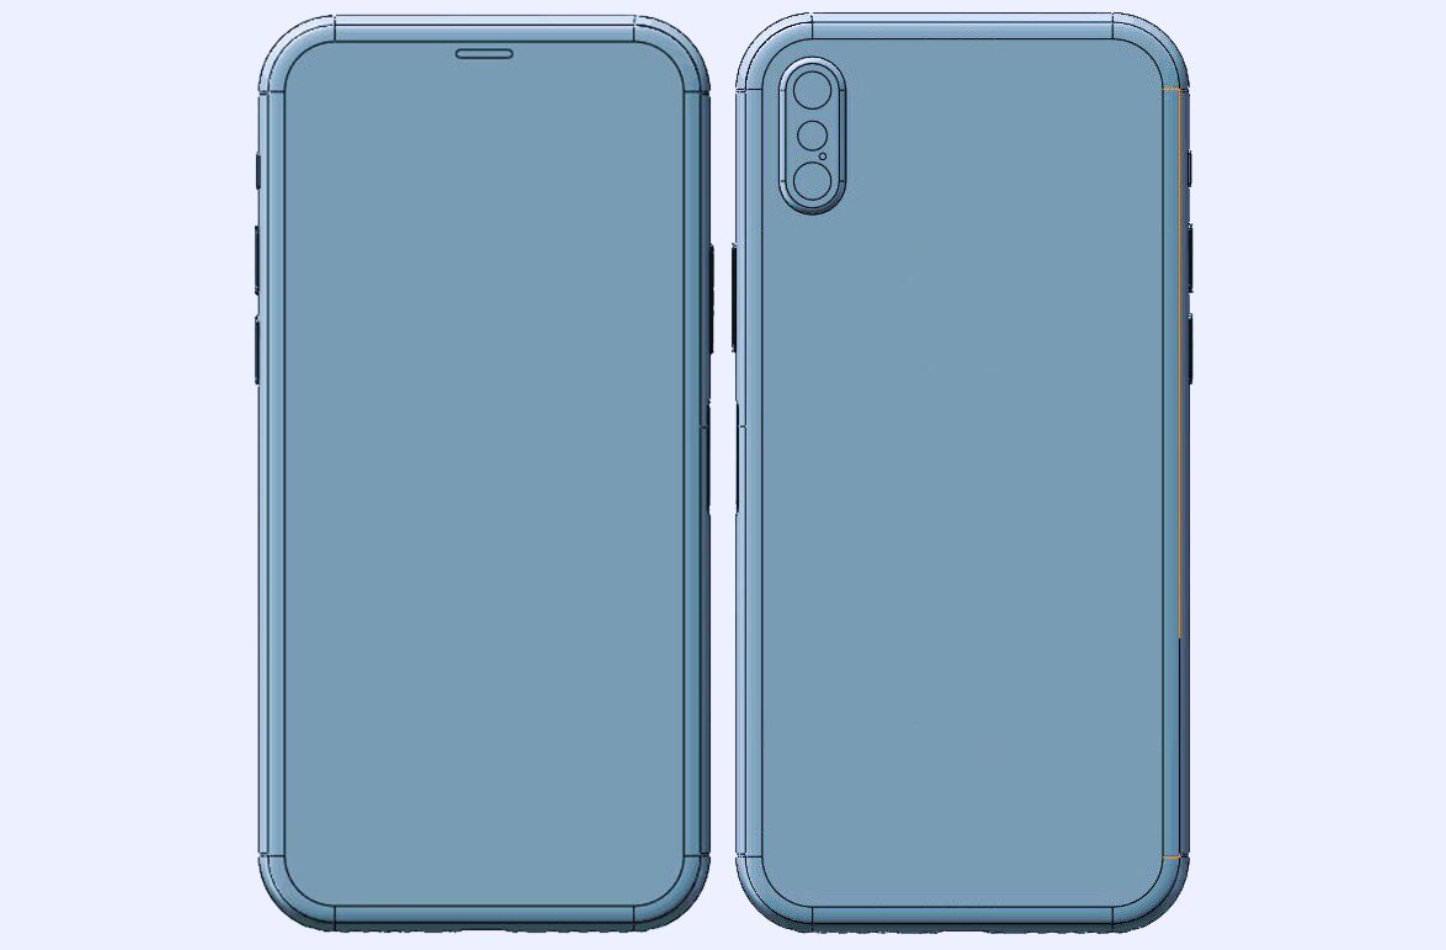 New iphone 8 schematics